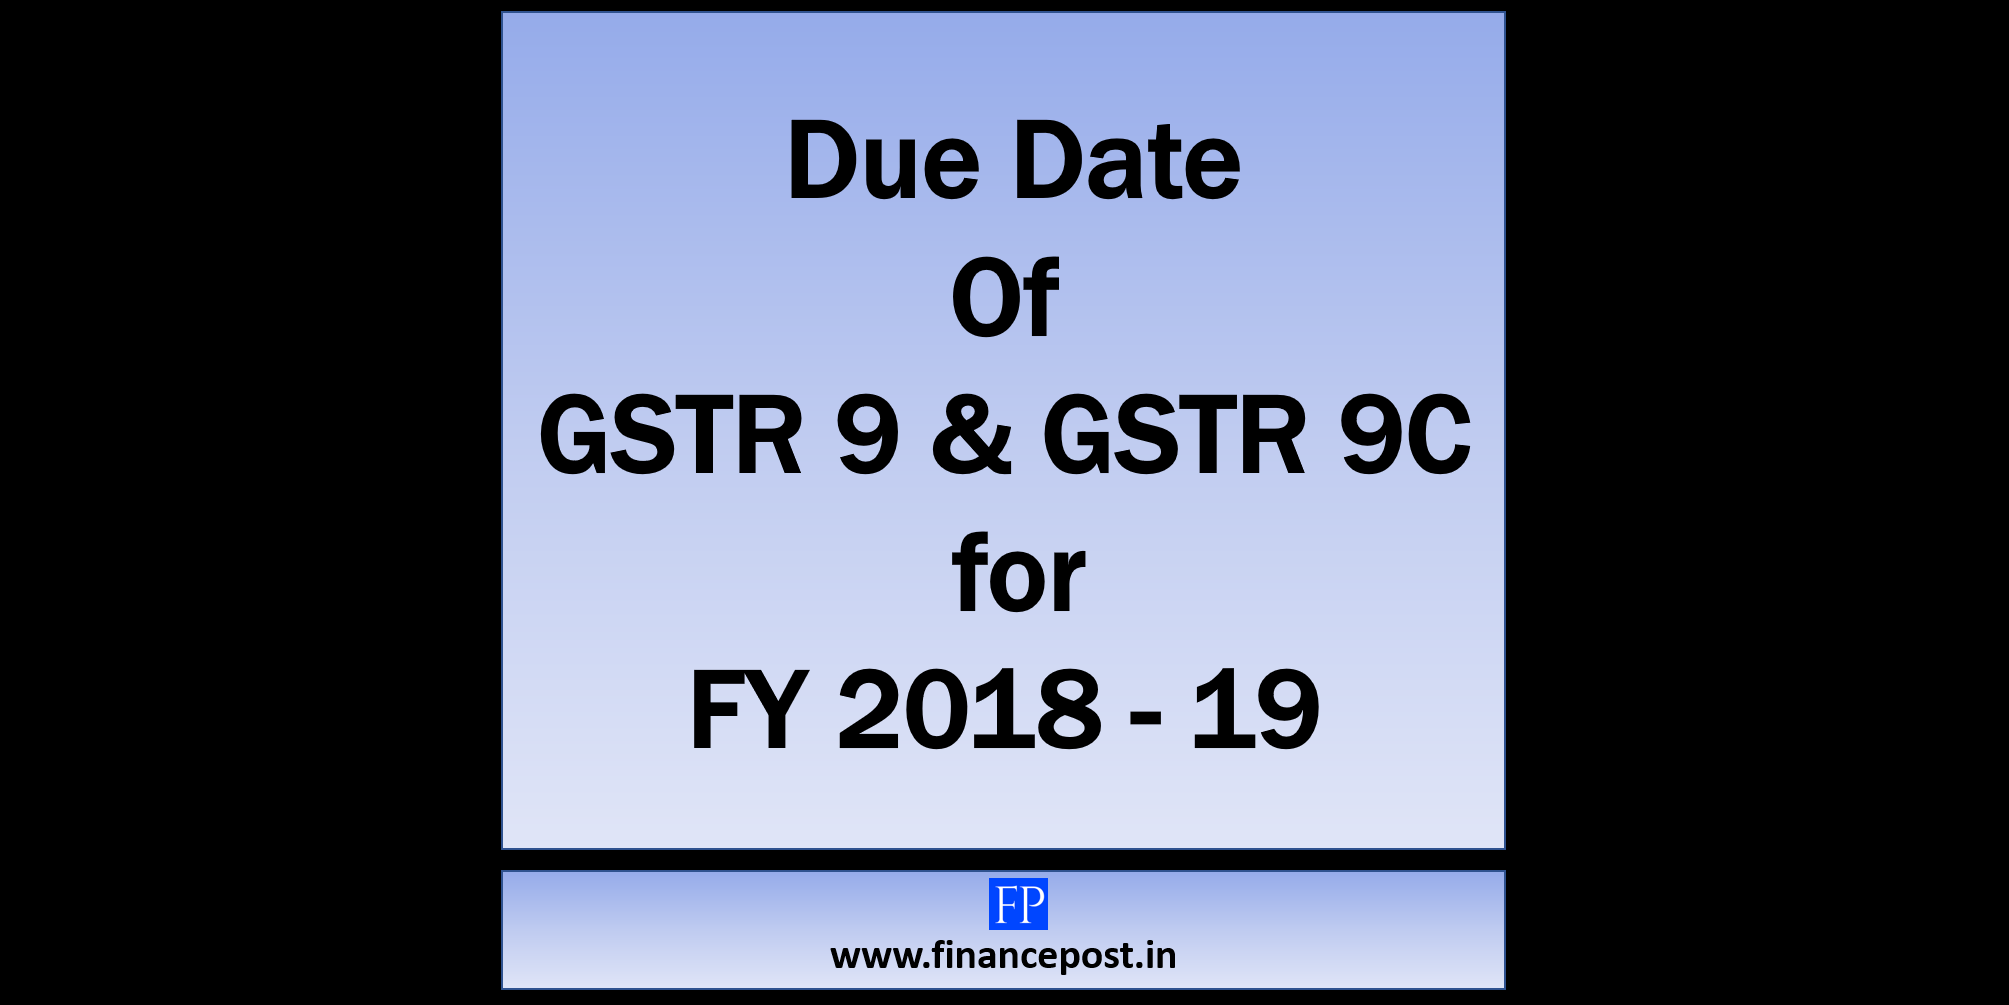 Due date of GSTR 9 and GSTR 9C for FY 2018-19